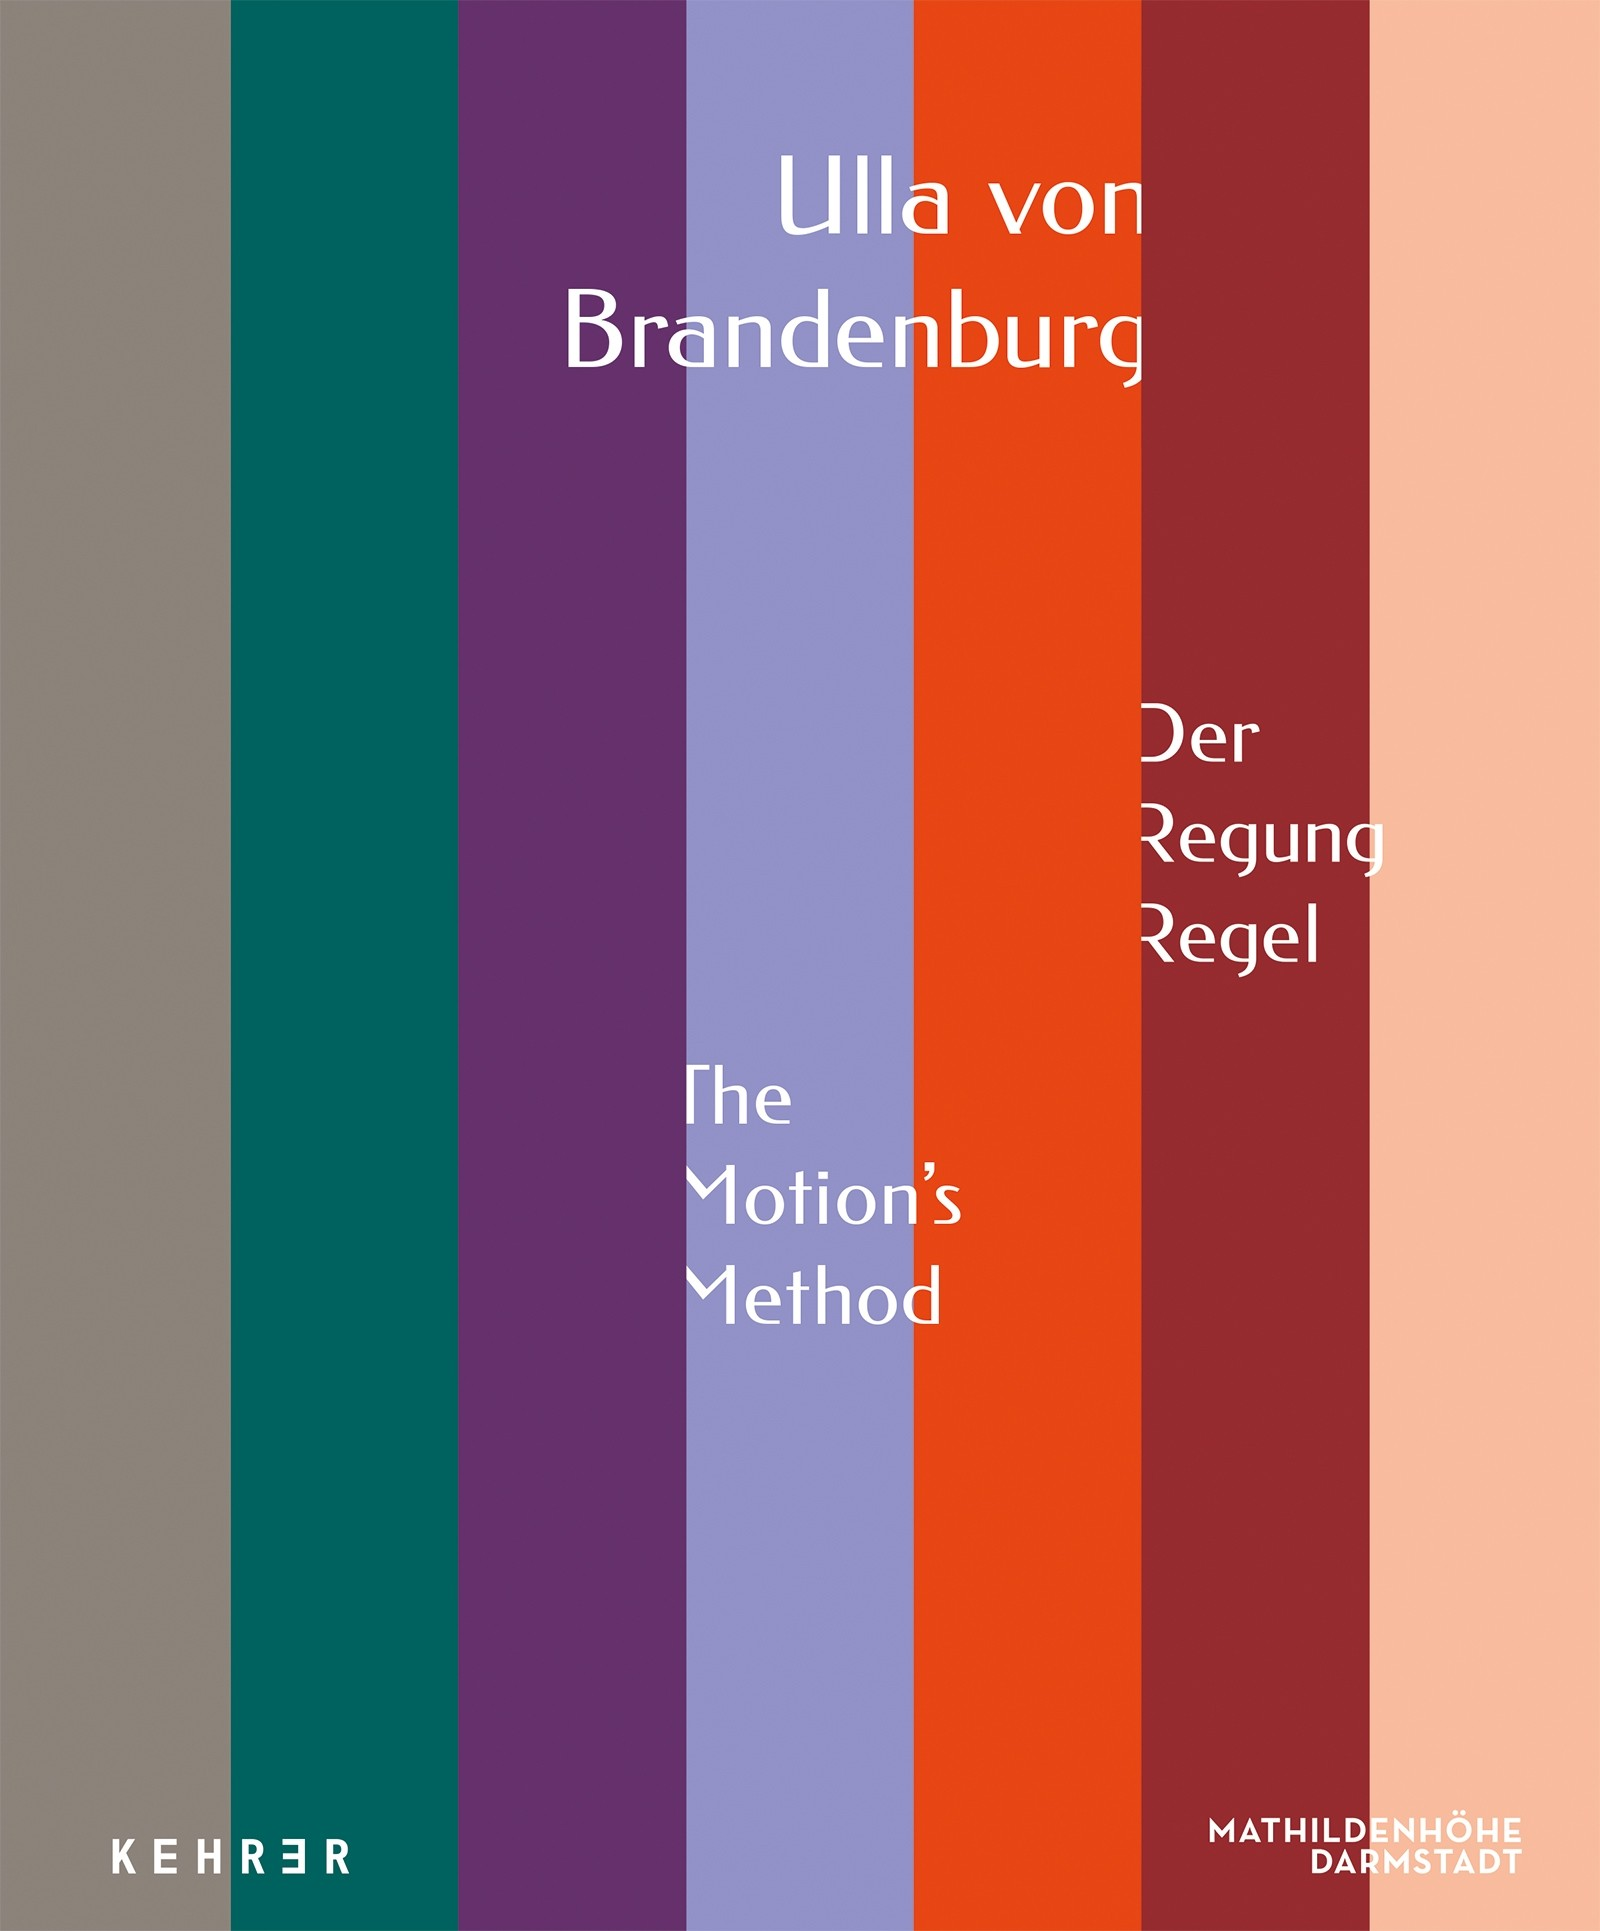 Ulla von Brandenburg The Motion's Method / Der Regung Regel